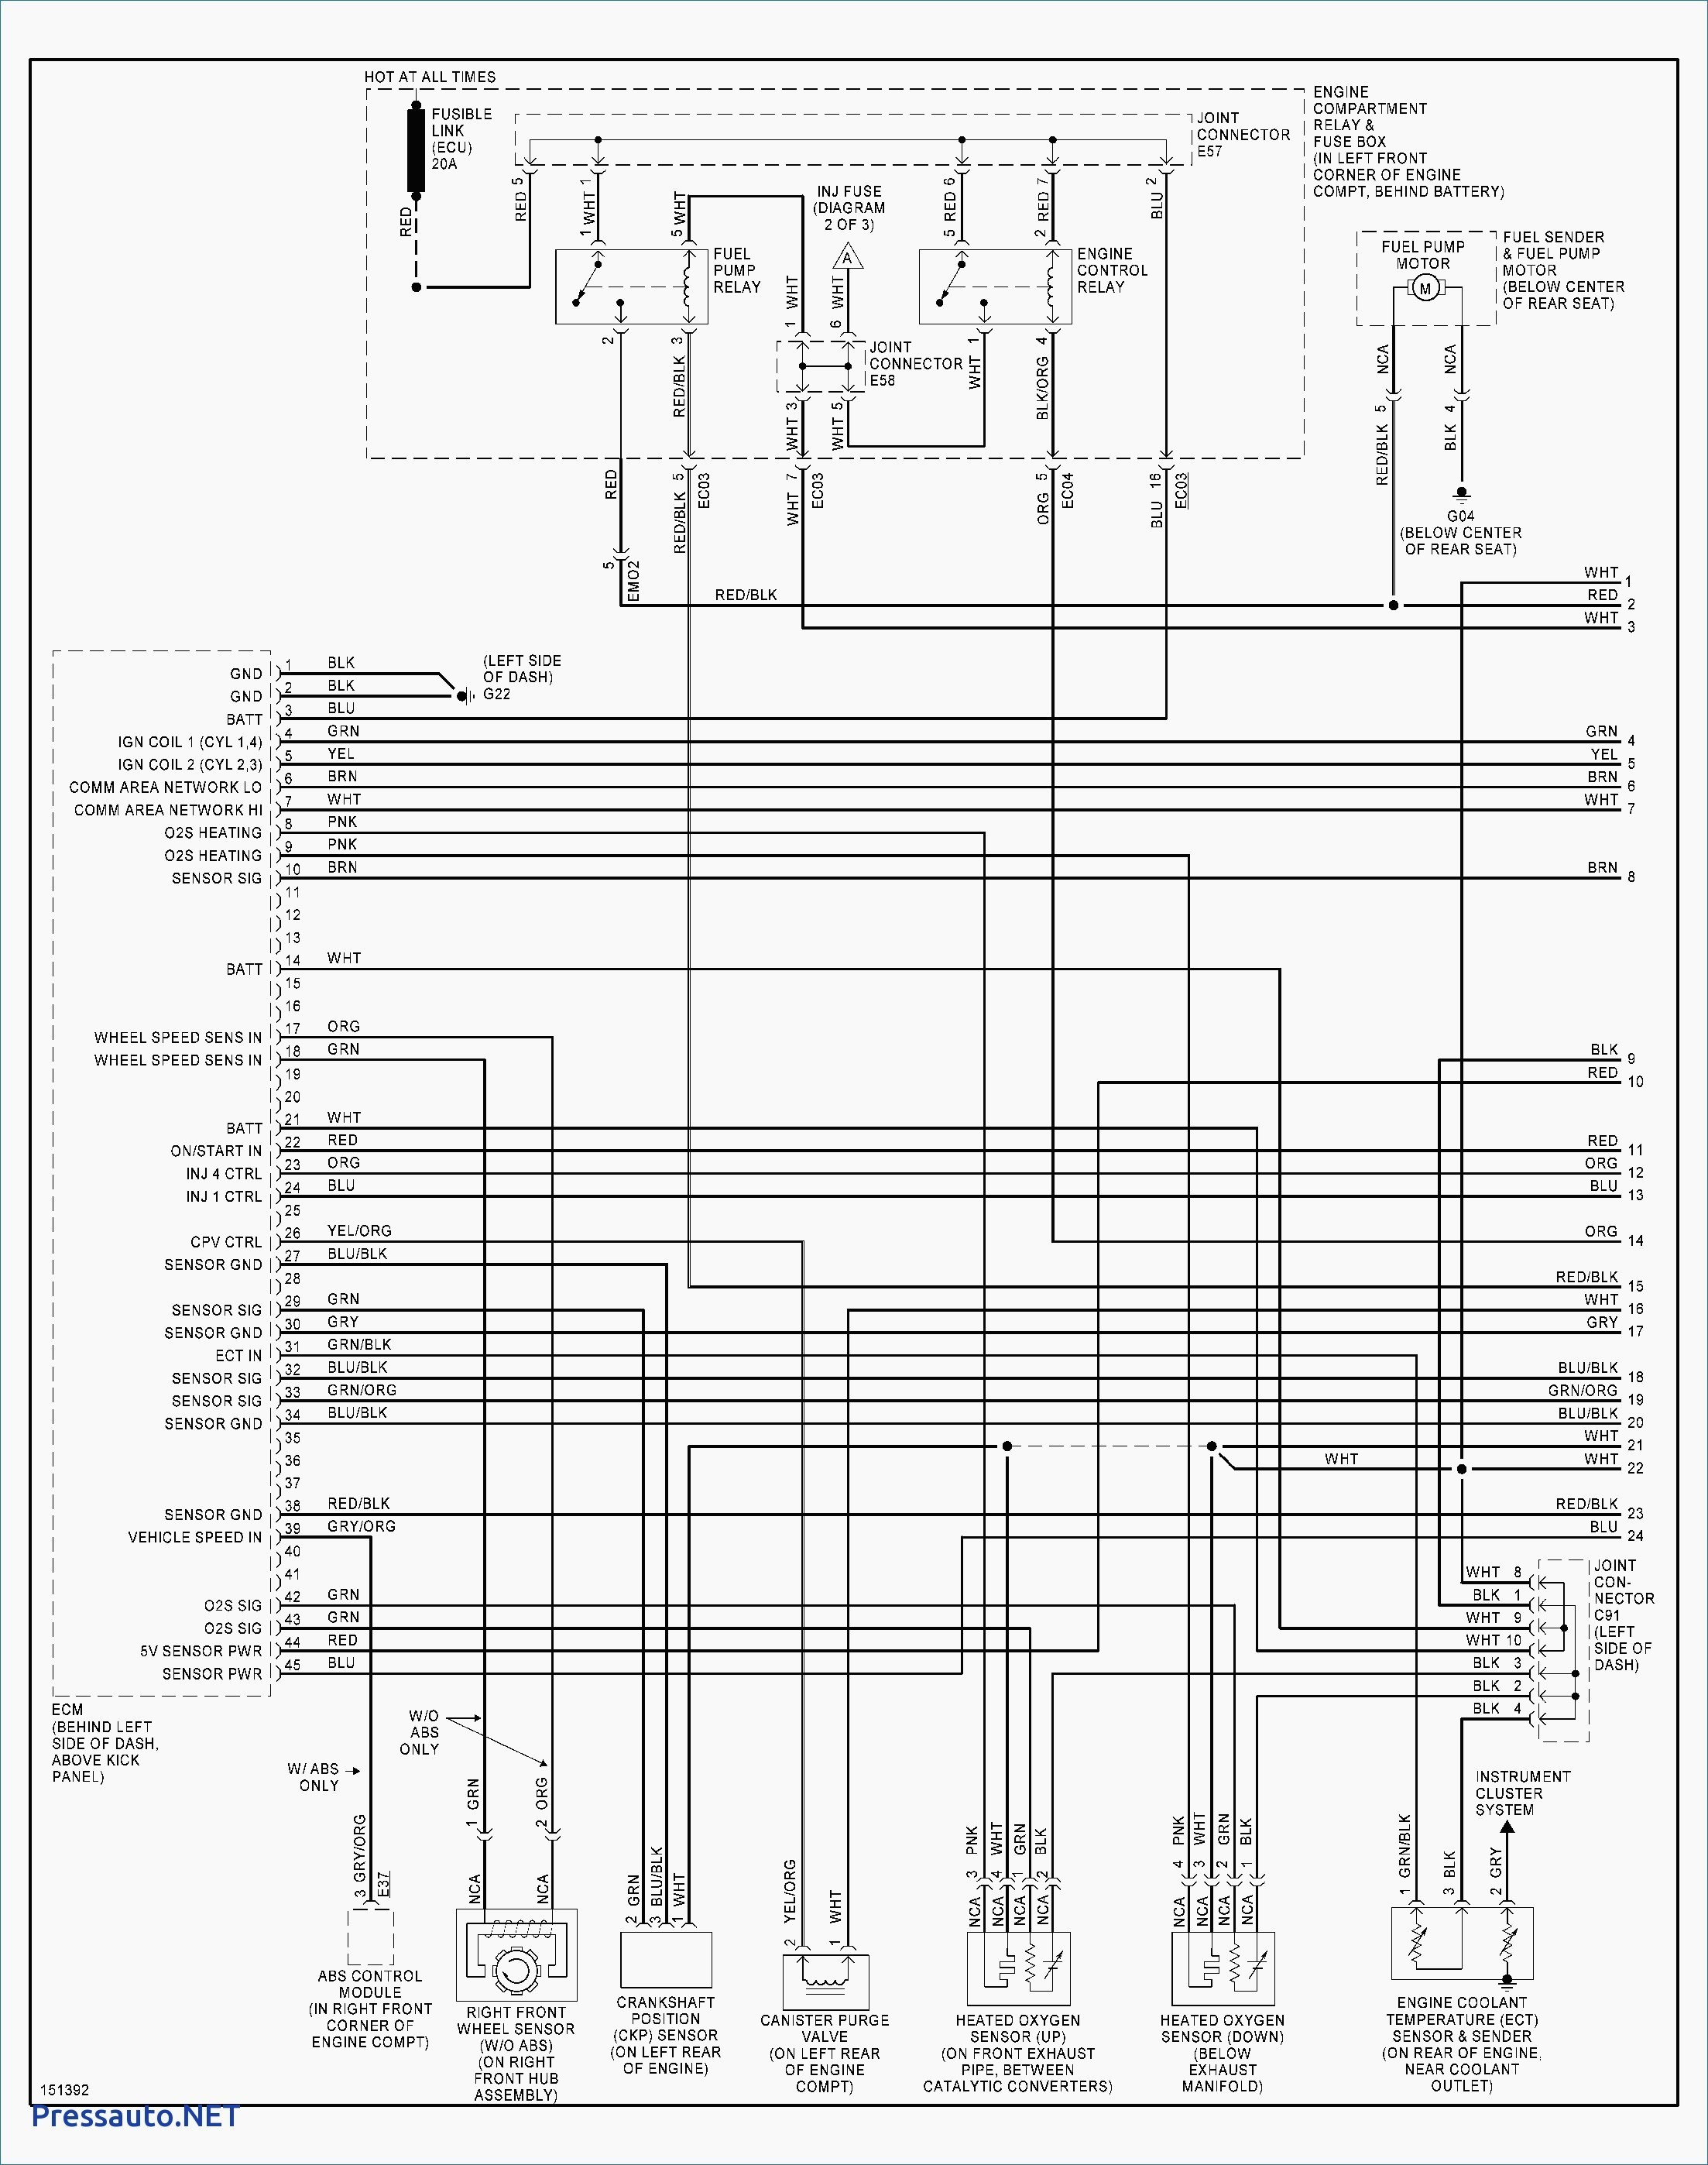 2002 Hyundai Accent Wiring Diagrams Data Diagram Today For Jeep Grand Cherokee All Laredo 2001